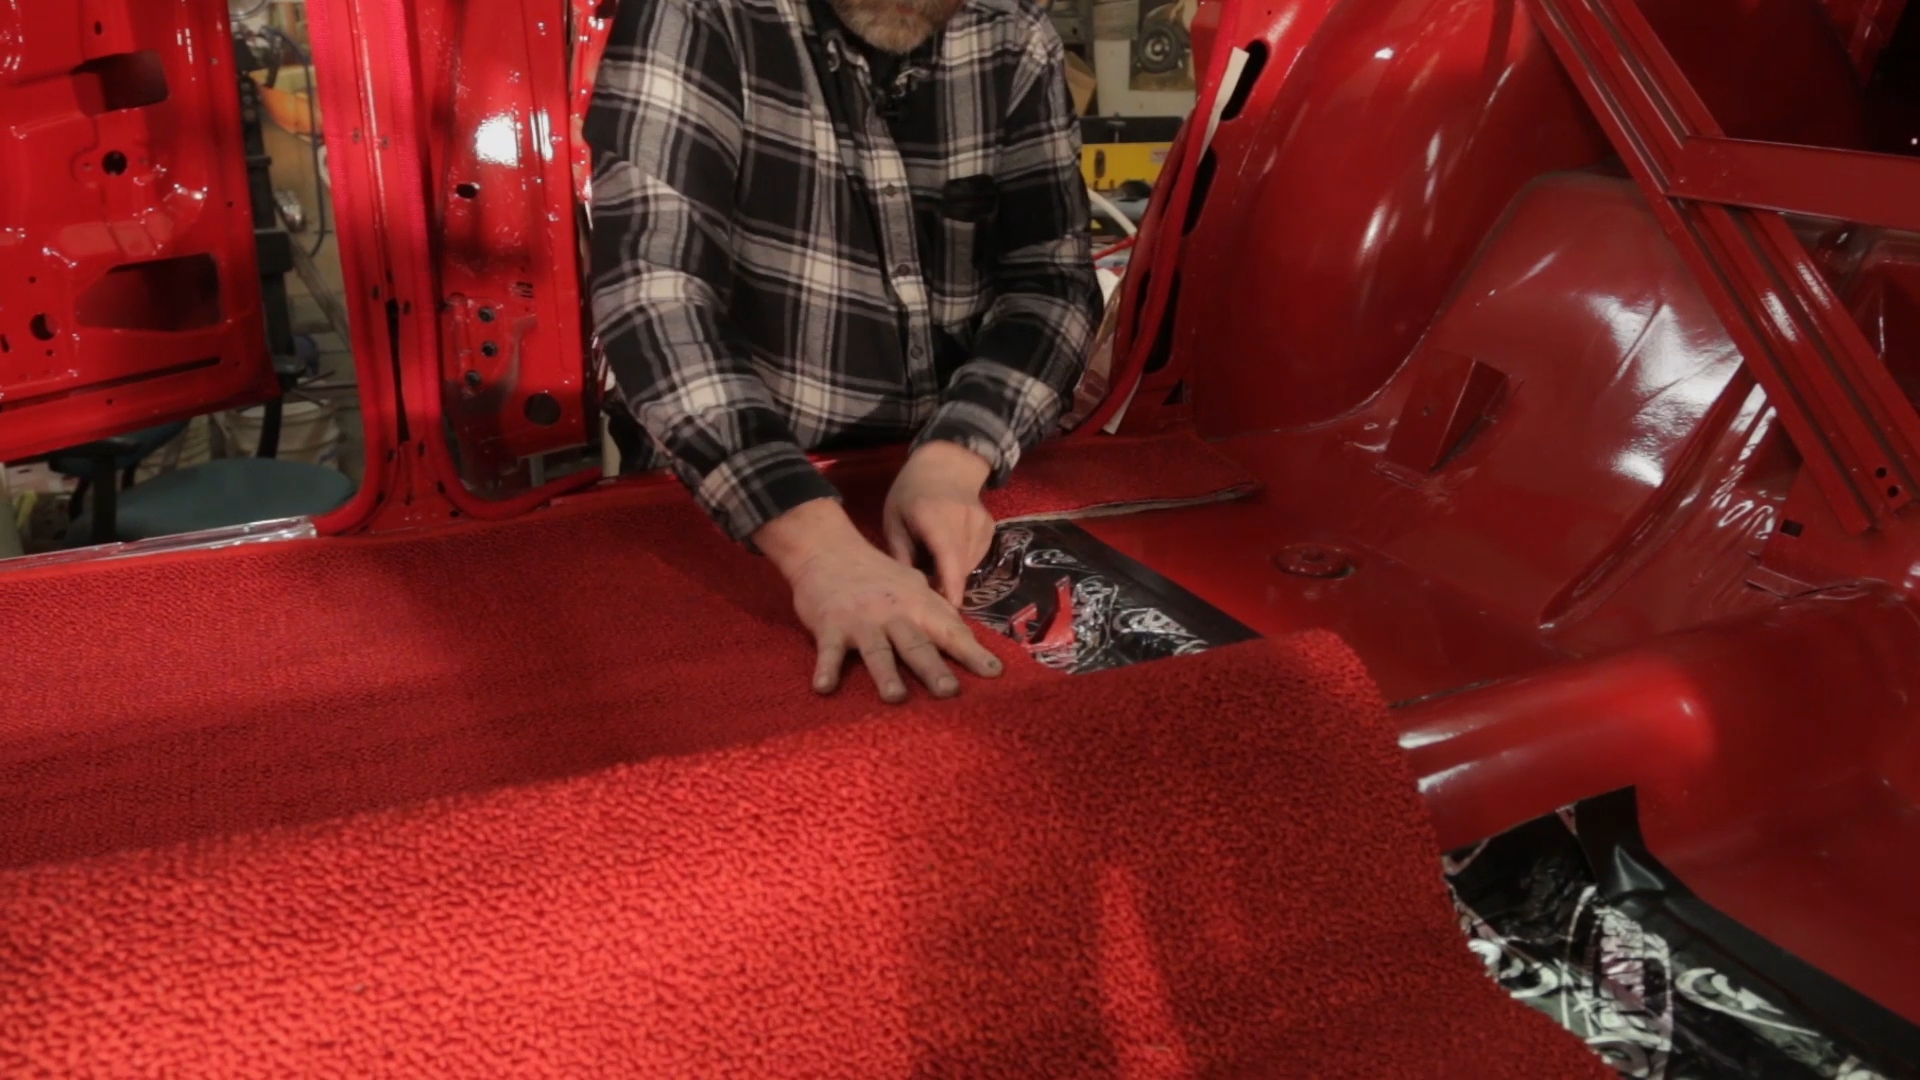 How To Install Carpet In A Car Classic Car Restoration Club